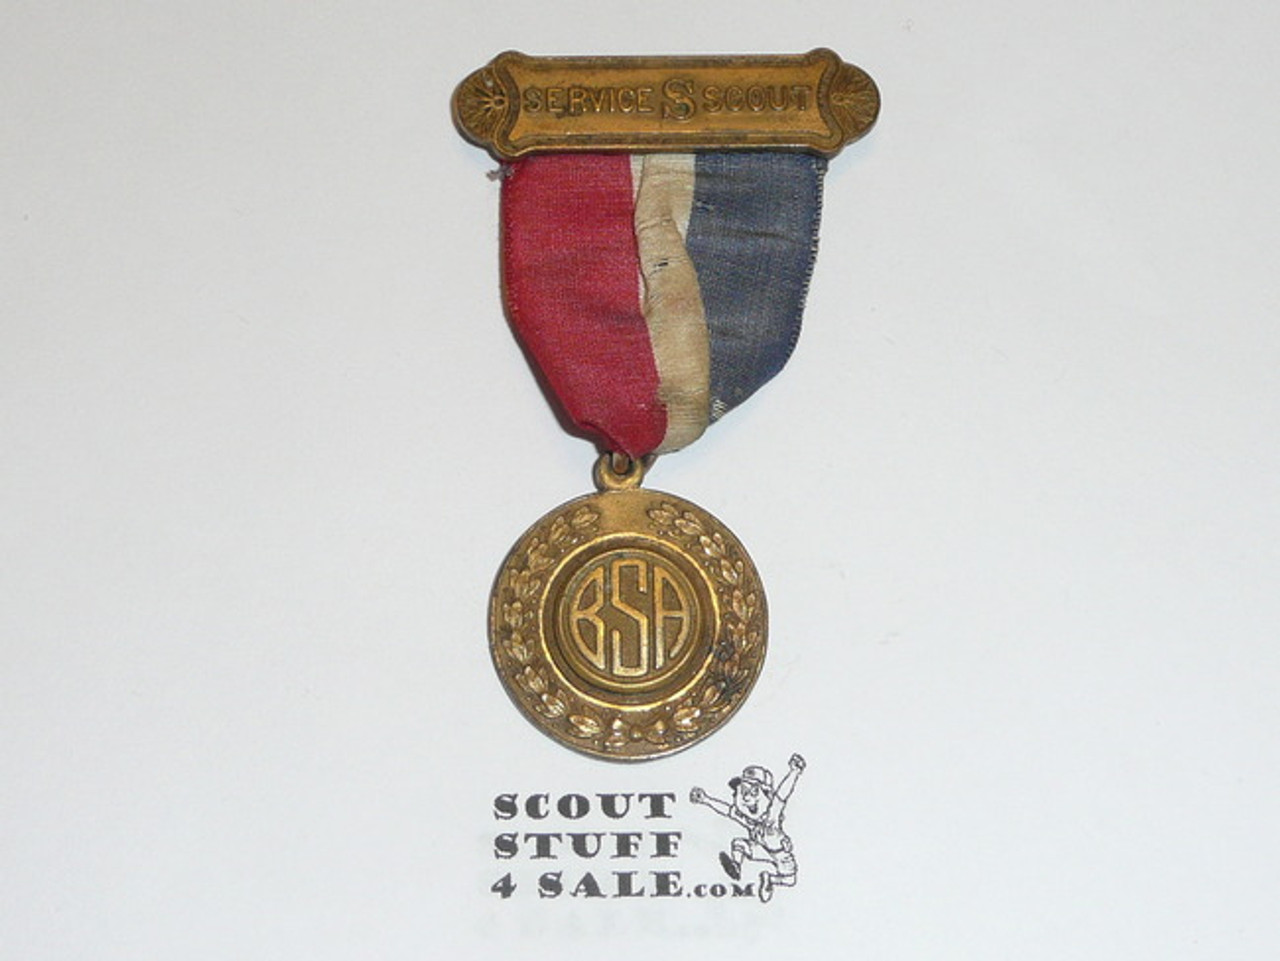 1920's Los Angeles Area Council Civic Service Scout Medal, Very Rare, Some Fraying to Ribbon